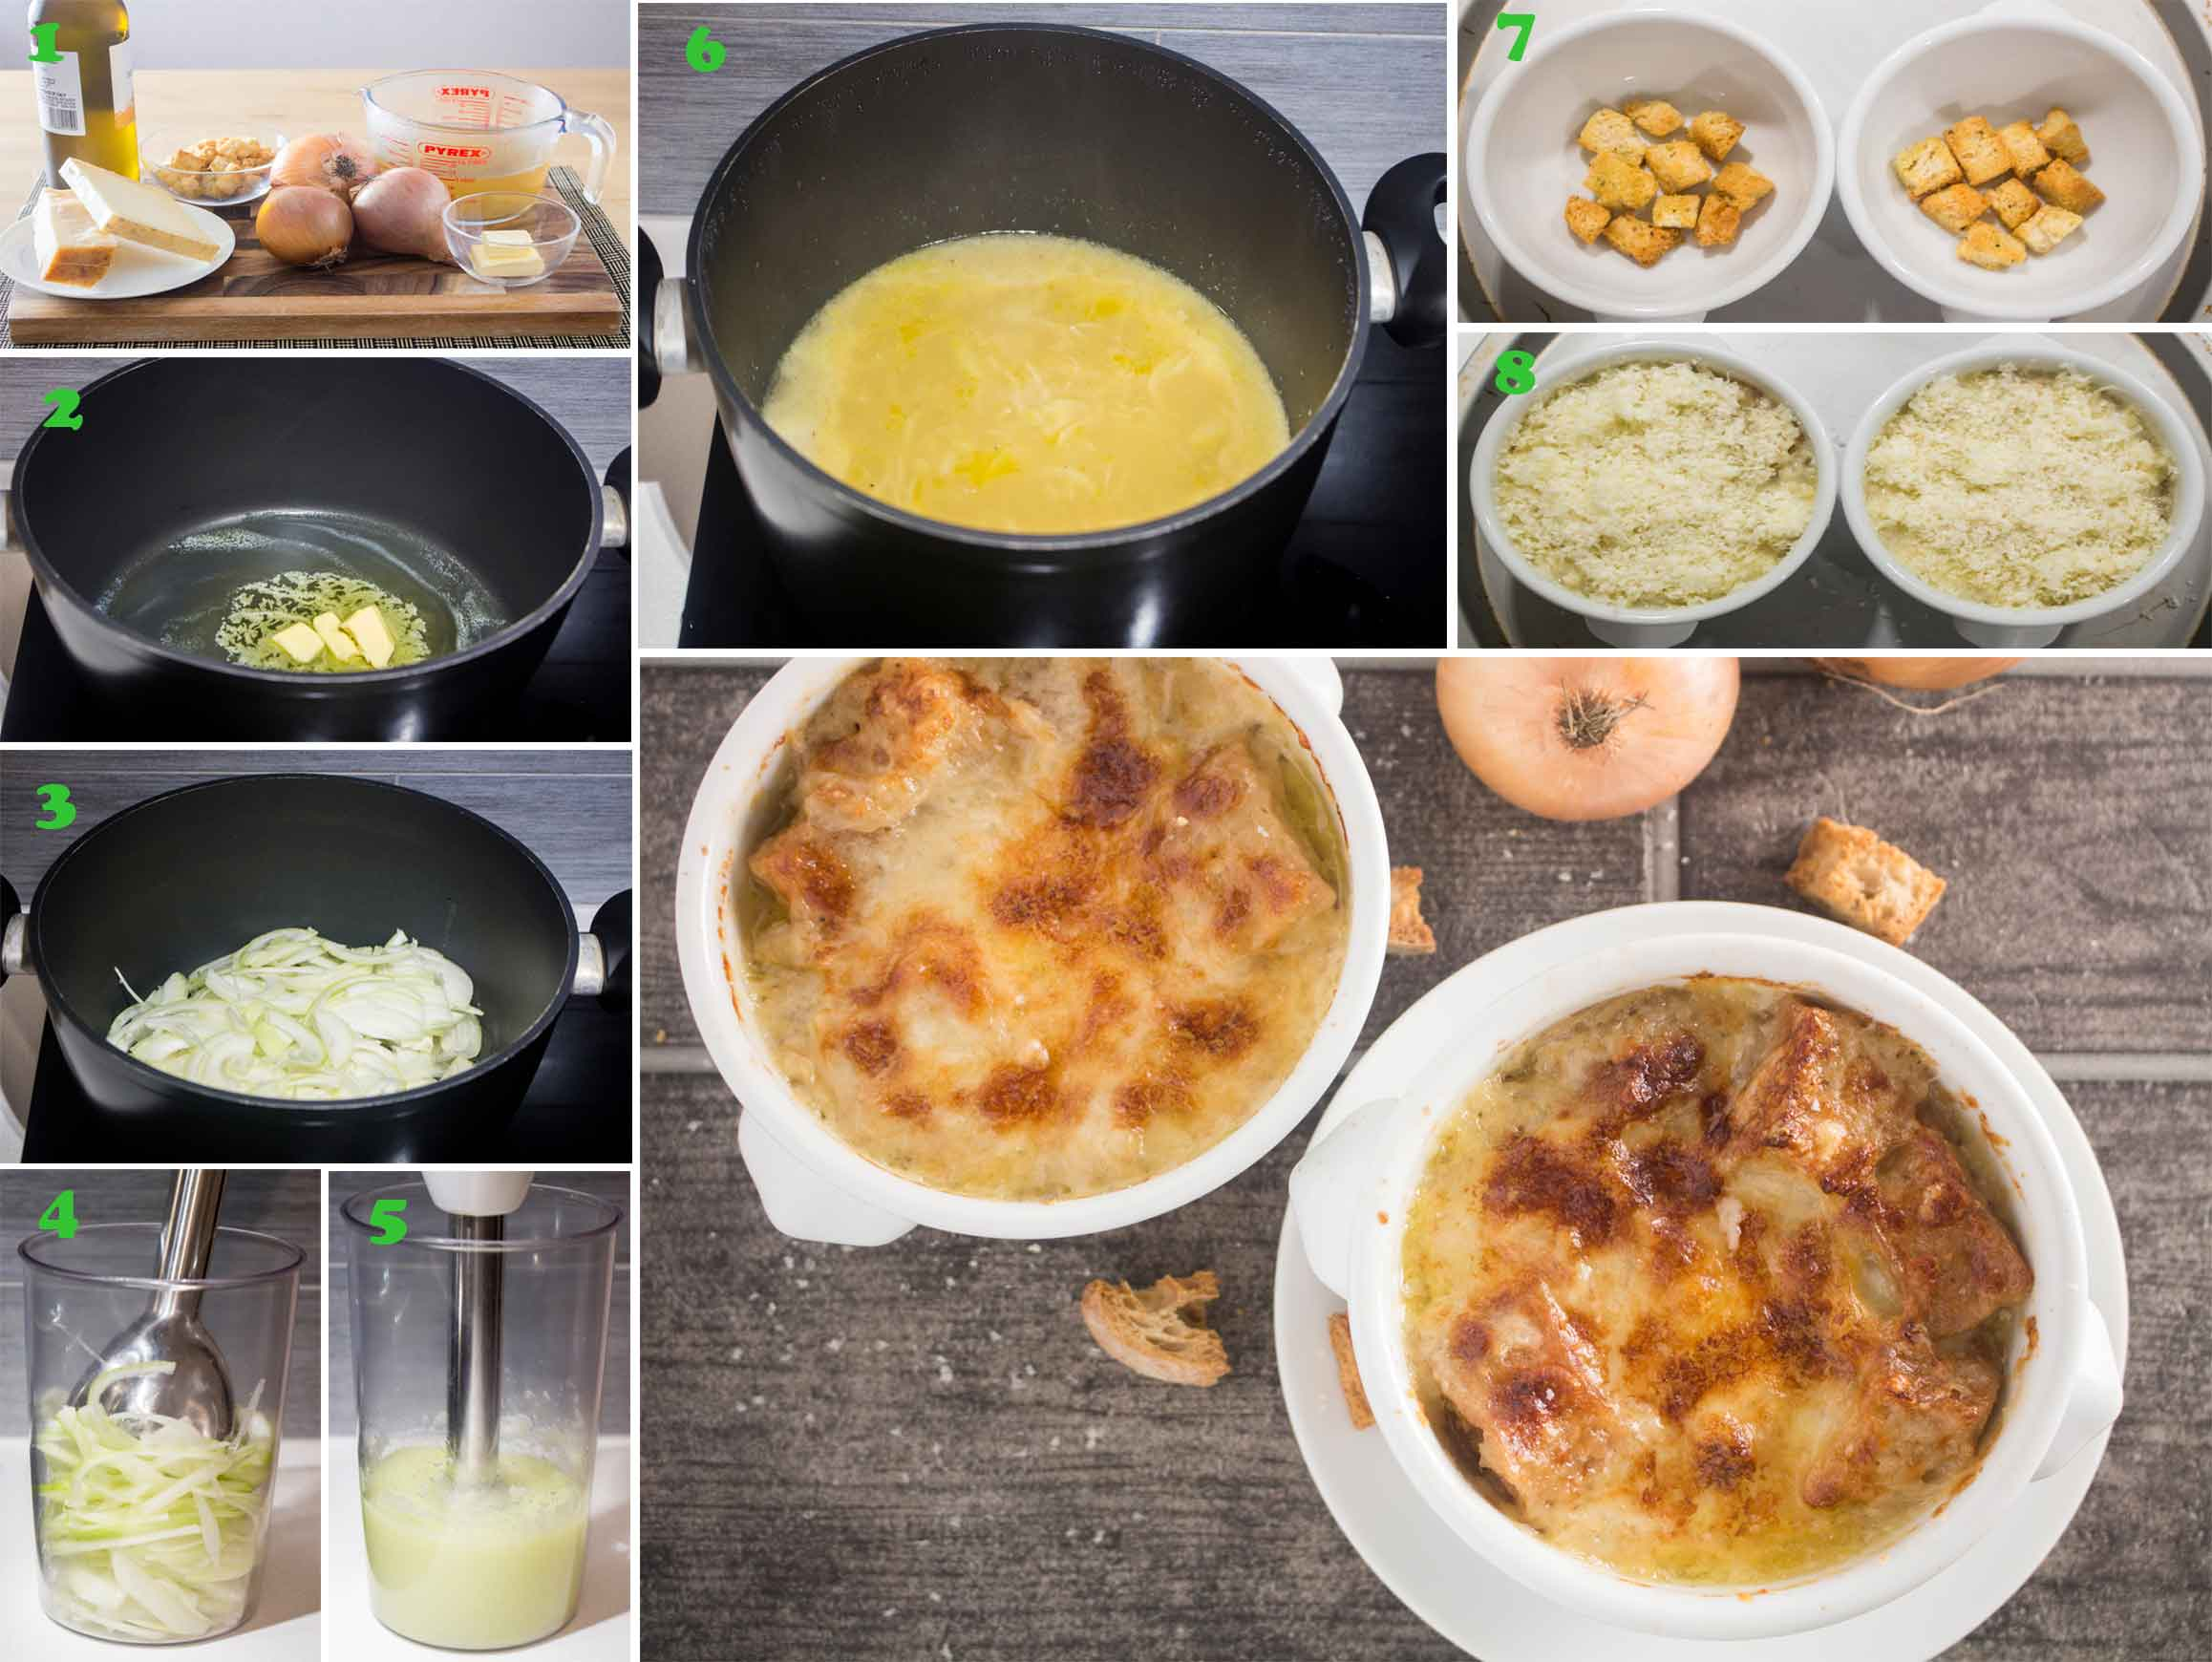 An image showing the steps to make onion soup gratin|foodandjourneys.net